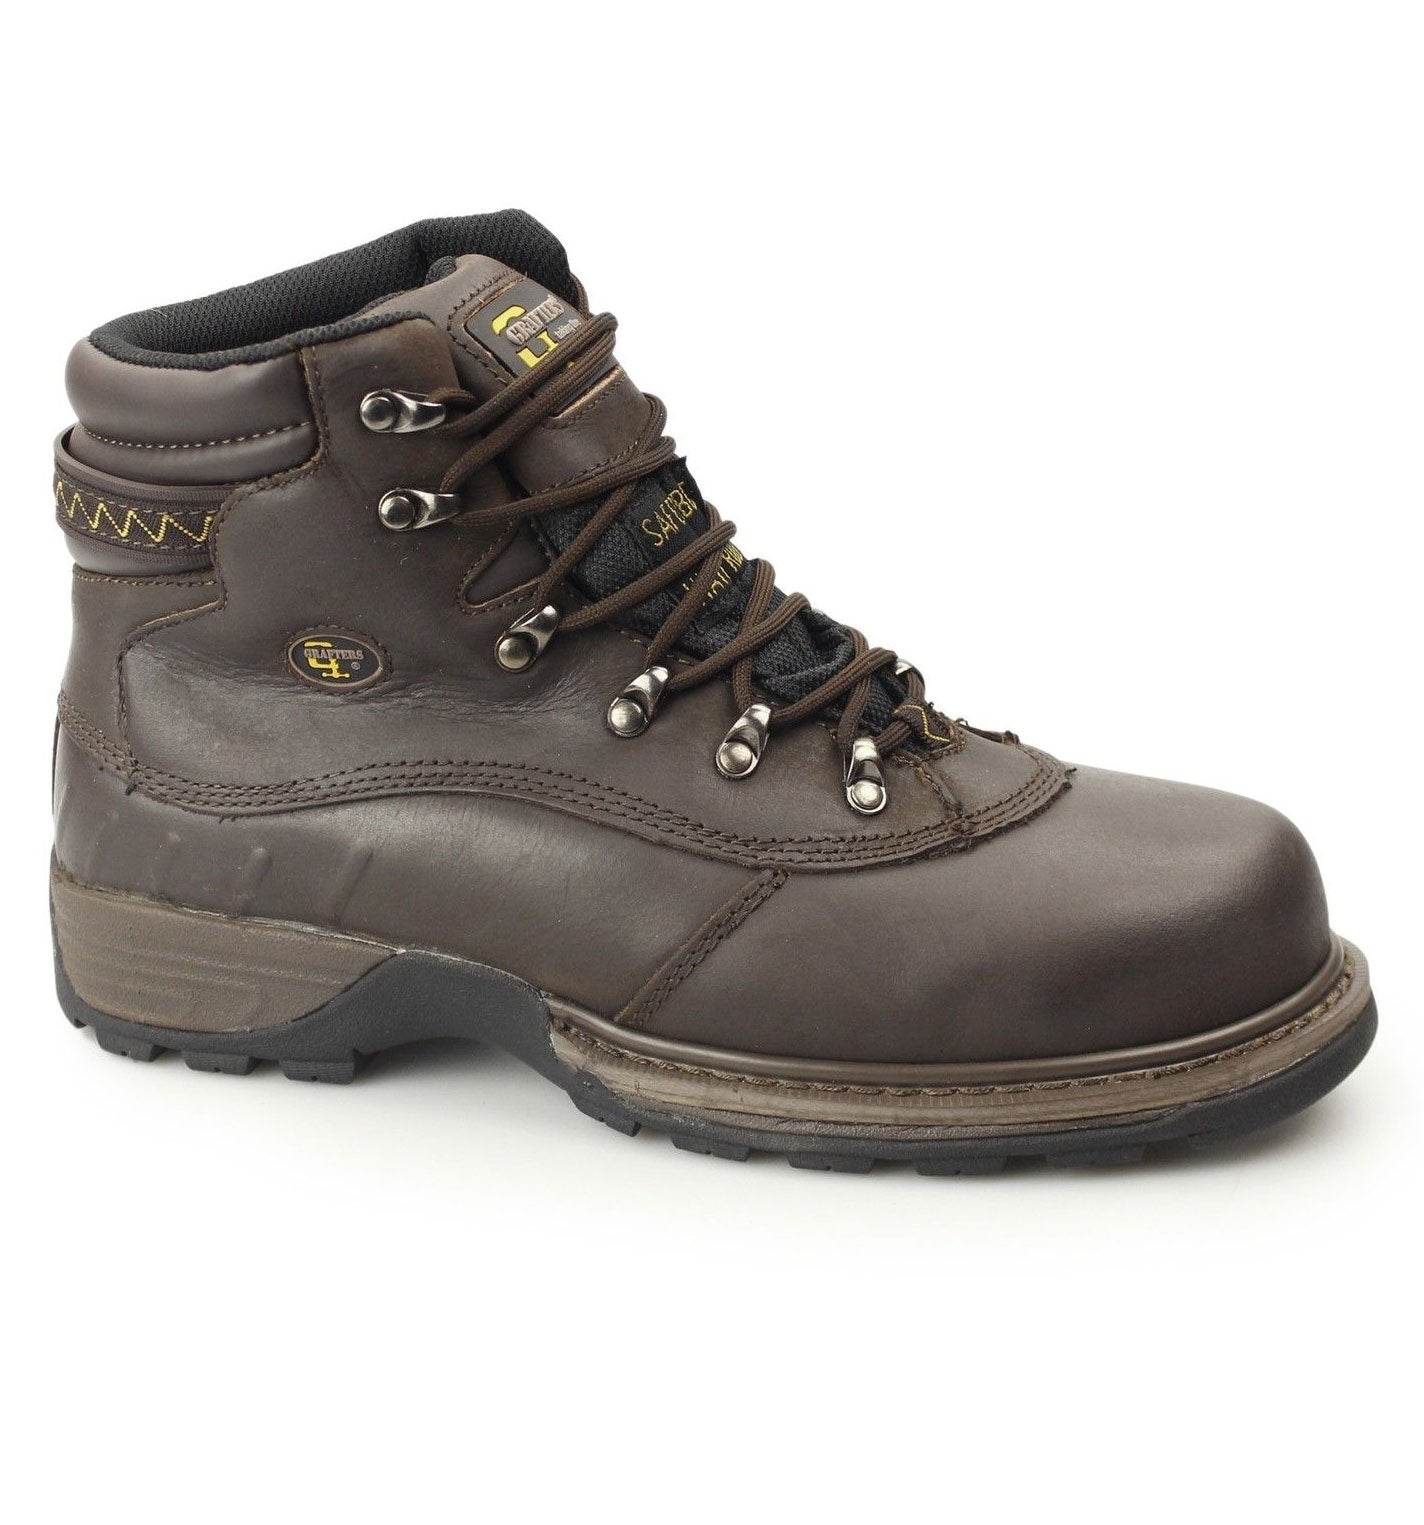 Grafters® Waterproof Safety Boot M139B Steel toe brown waxy leather